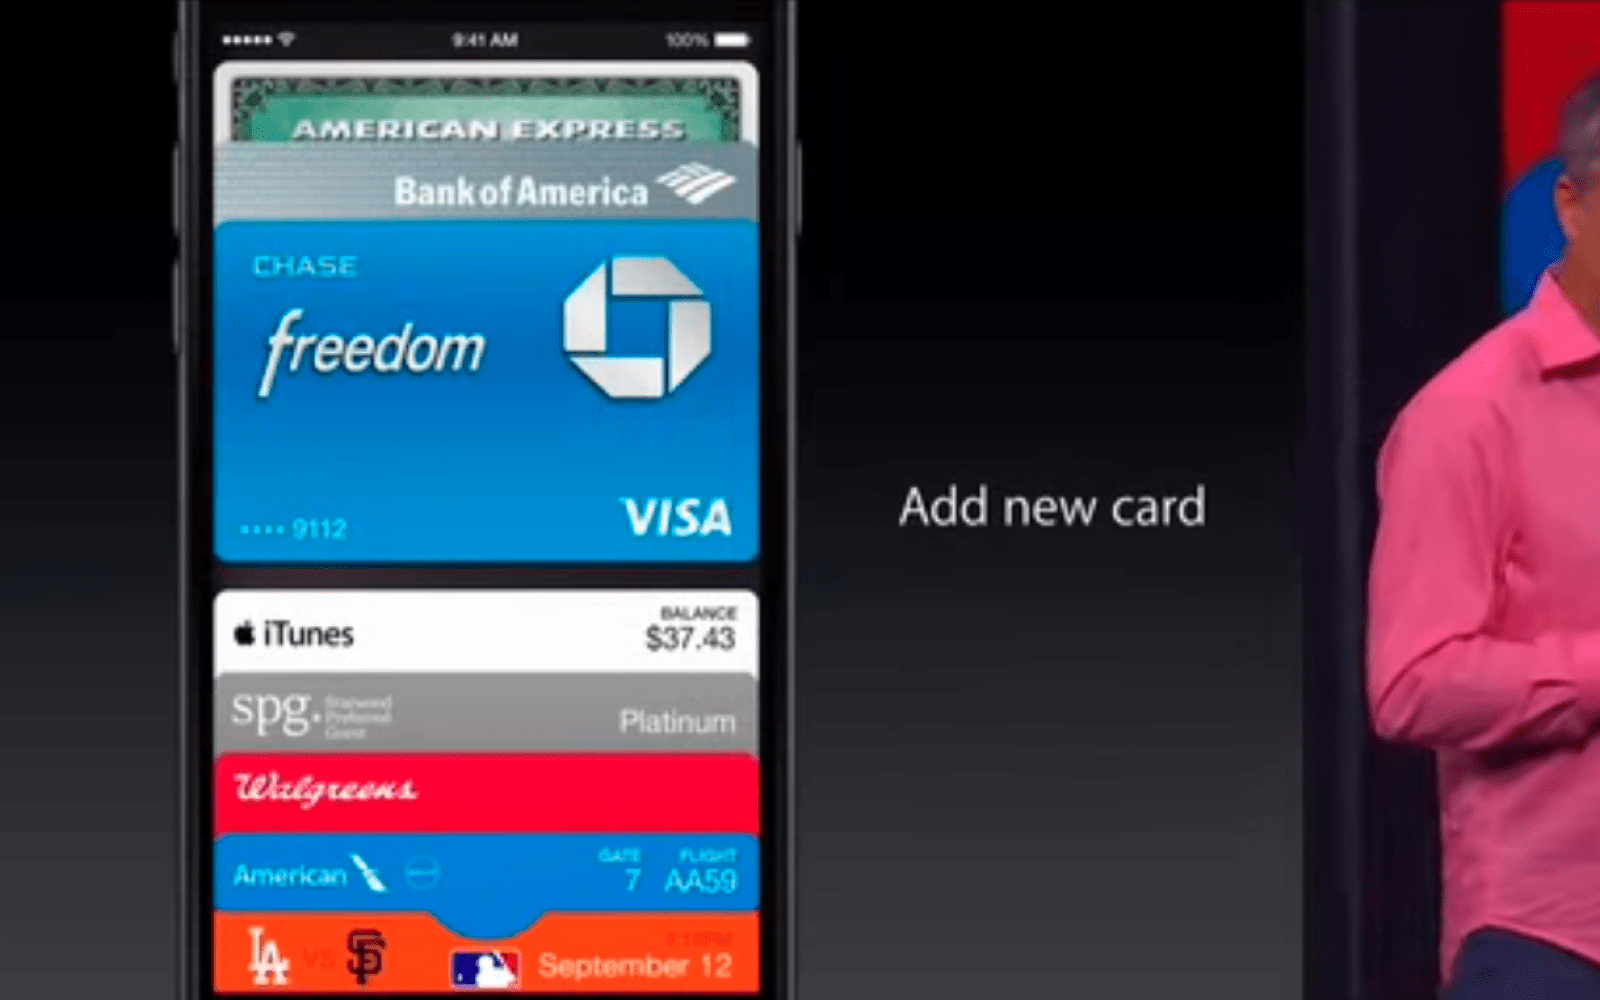 Apple Pay launch partner USAA says support arriving Nov. 7